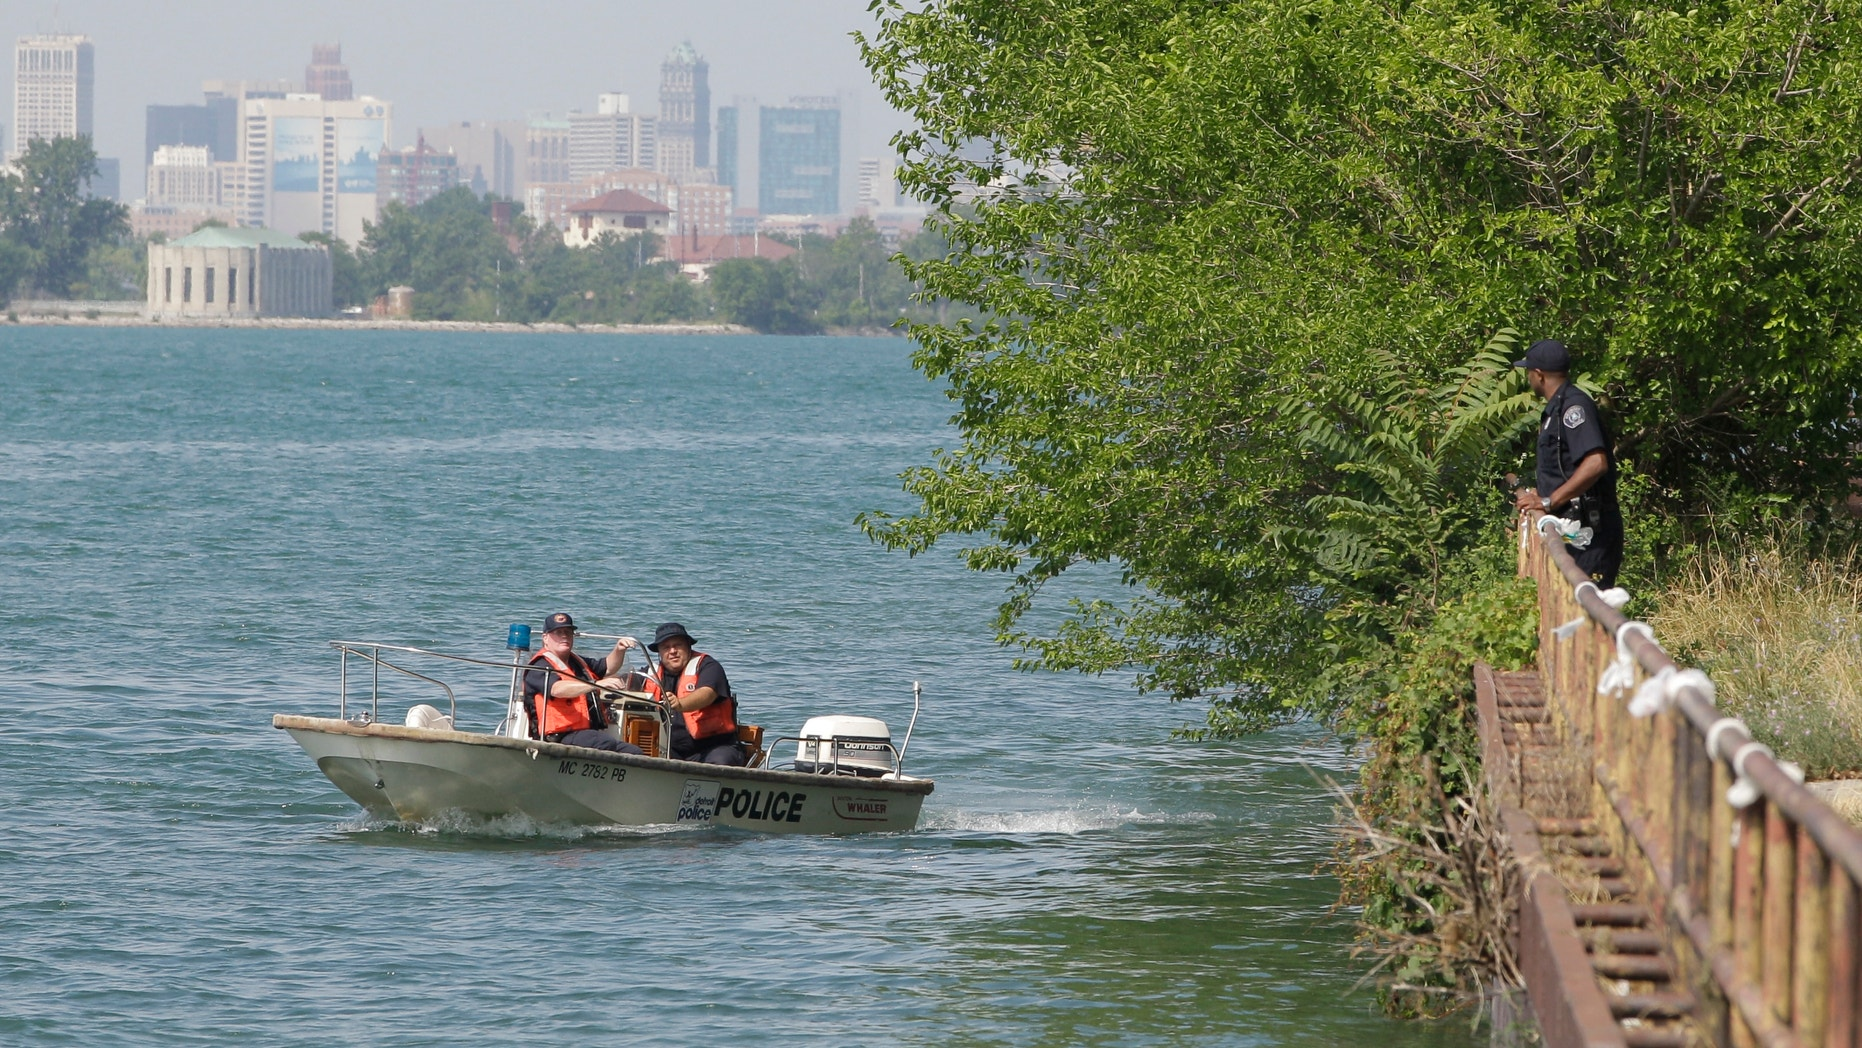 July 17, 2012: Detroit police look over the scene in the Detroit River where the U.S. Coast Guard says the bodies of a man and a woman whose heads, hands and feet were cut off were found floating.